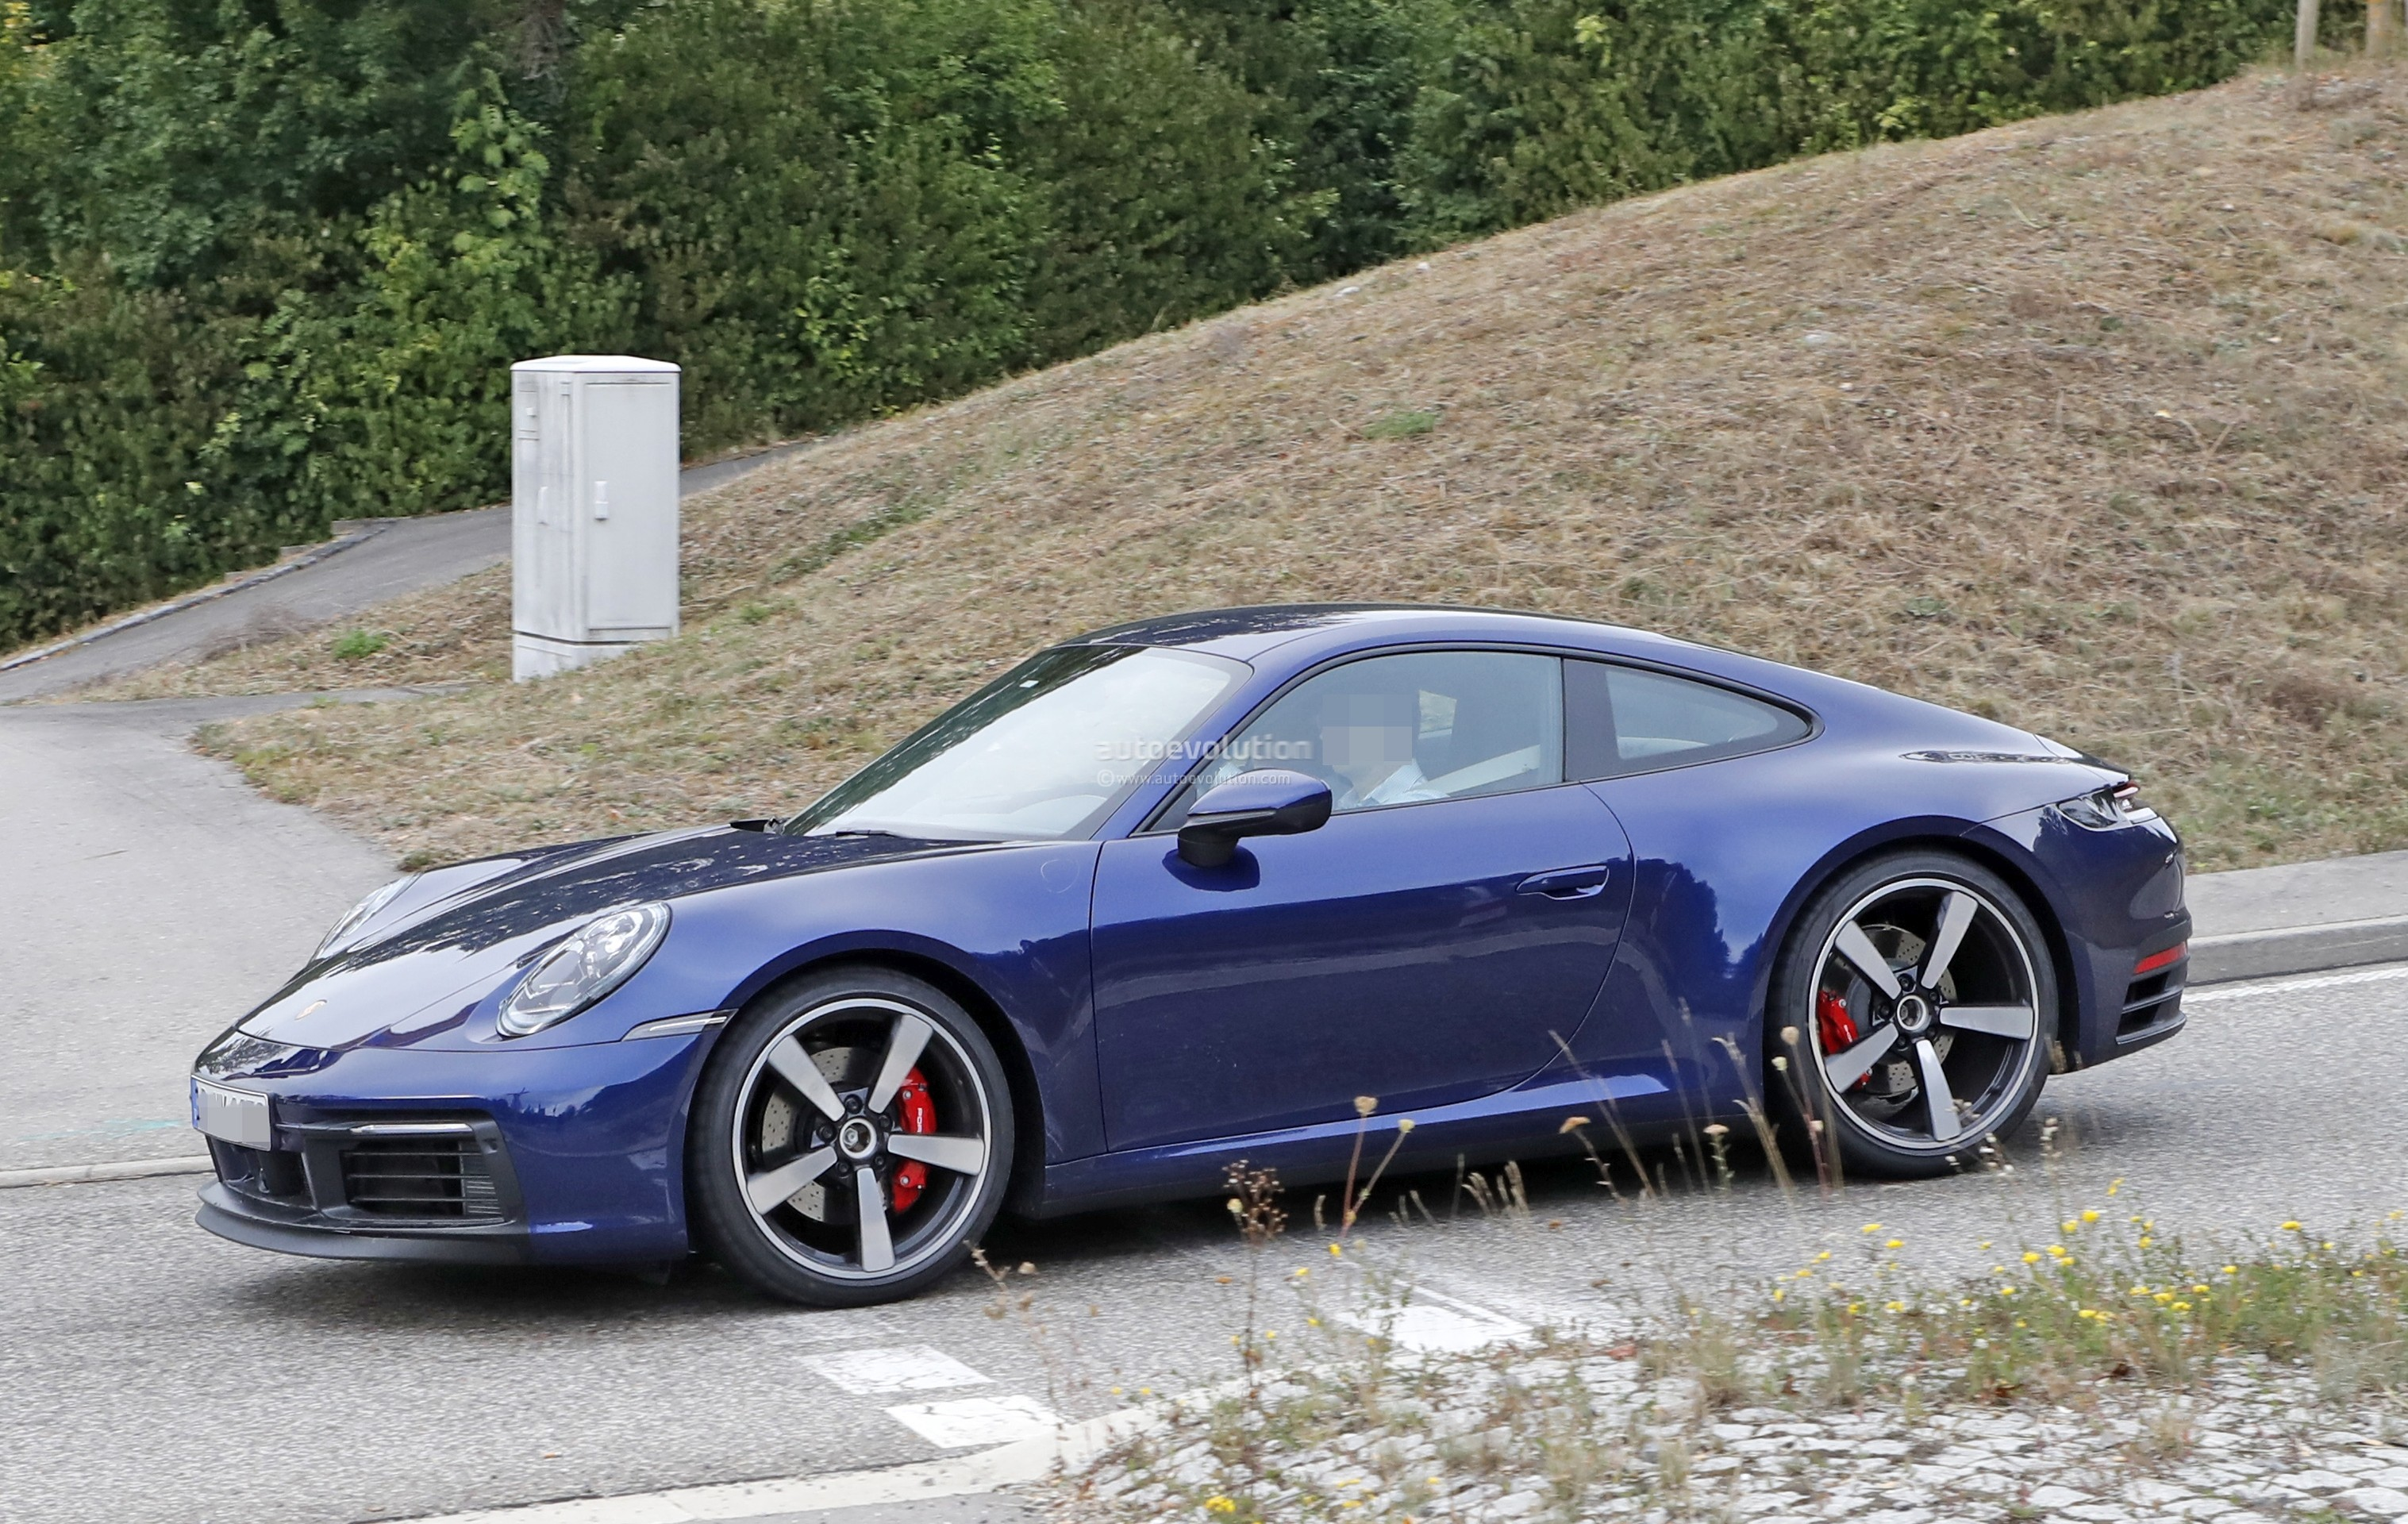 2019 Porsche 718 Cayman GT4 Revealed by Naked Tester, Has